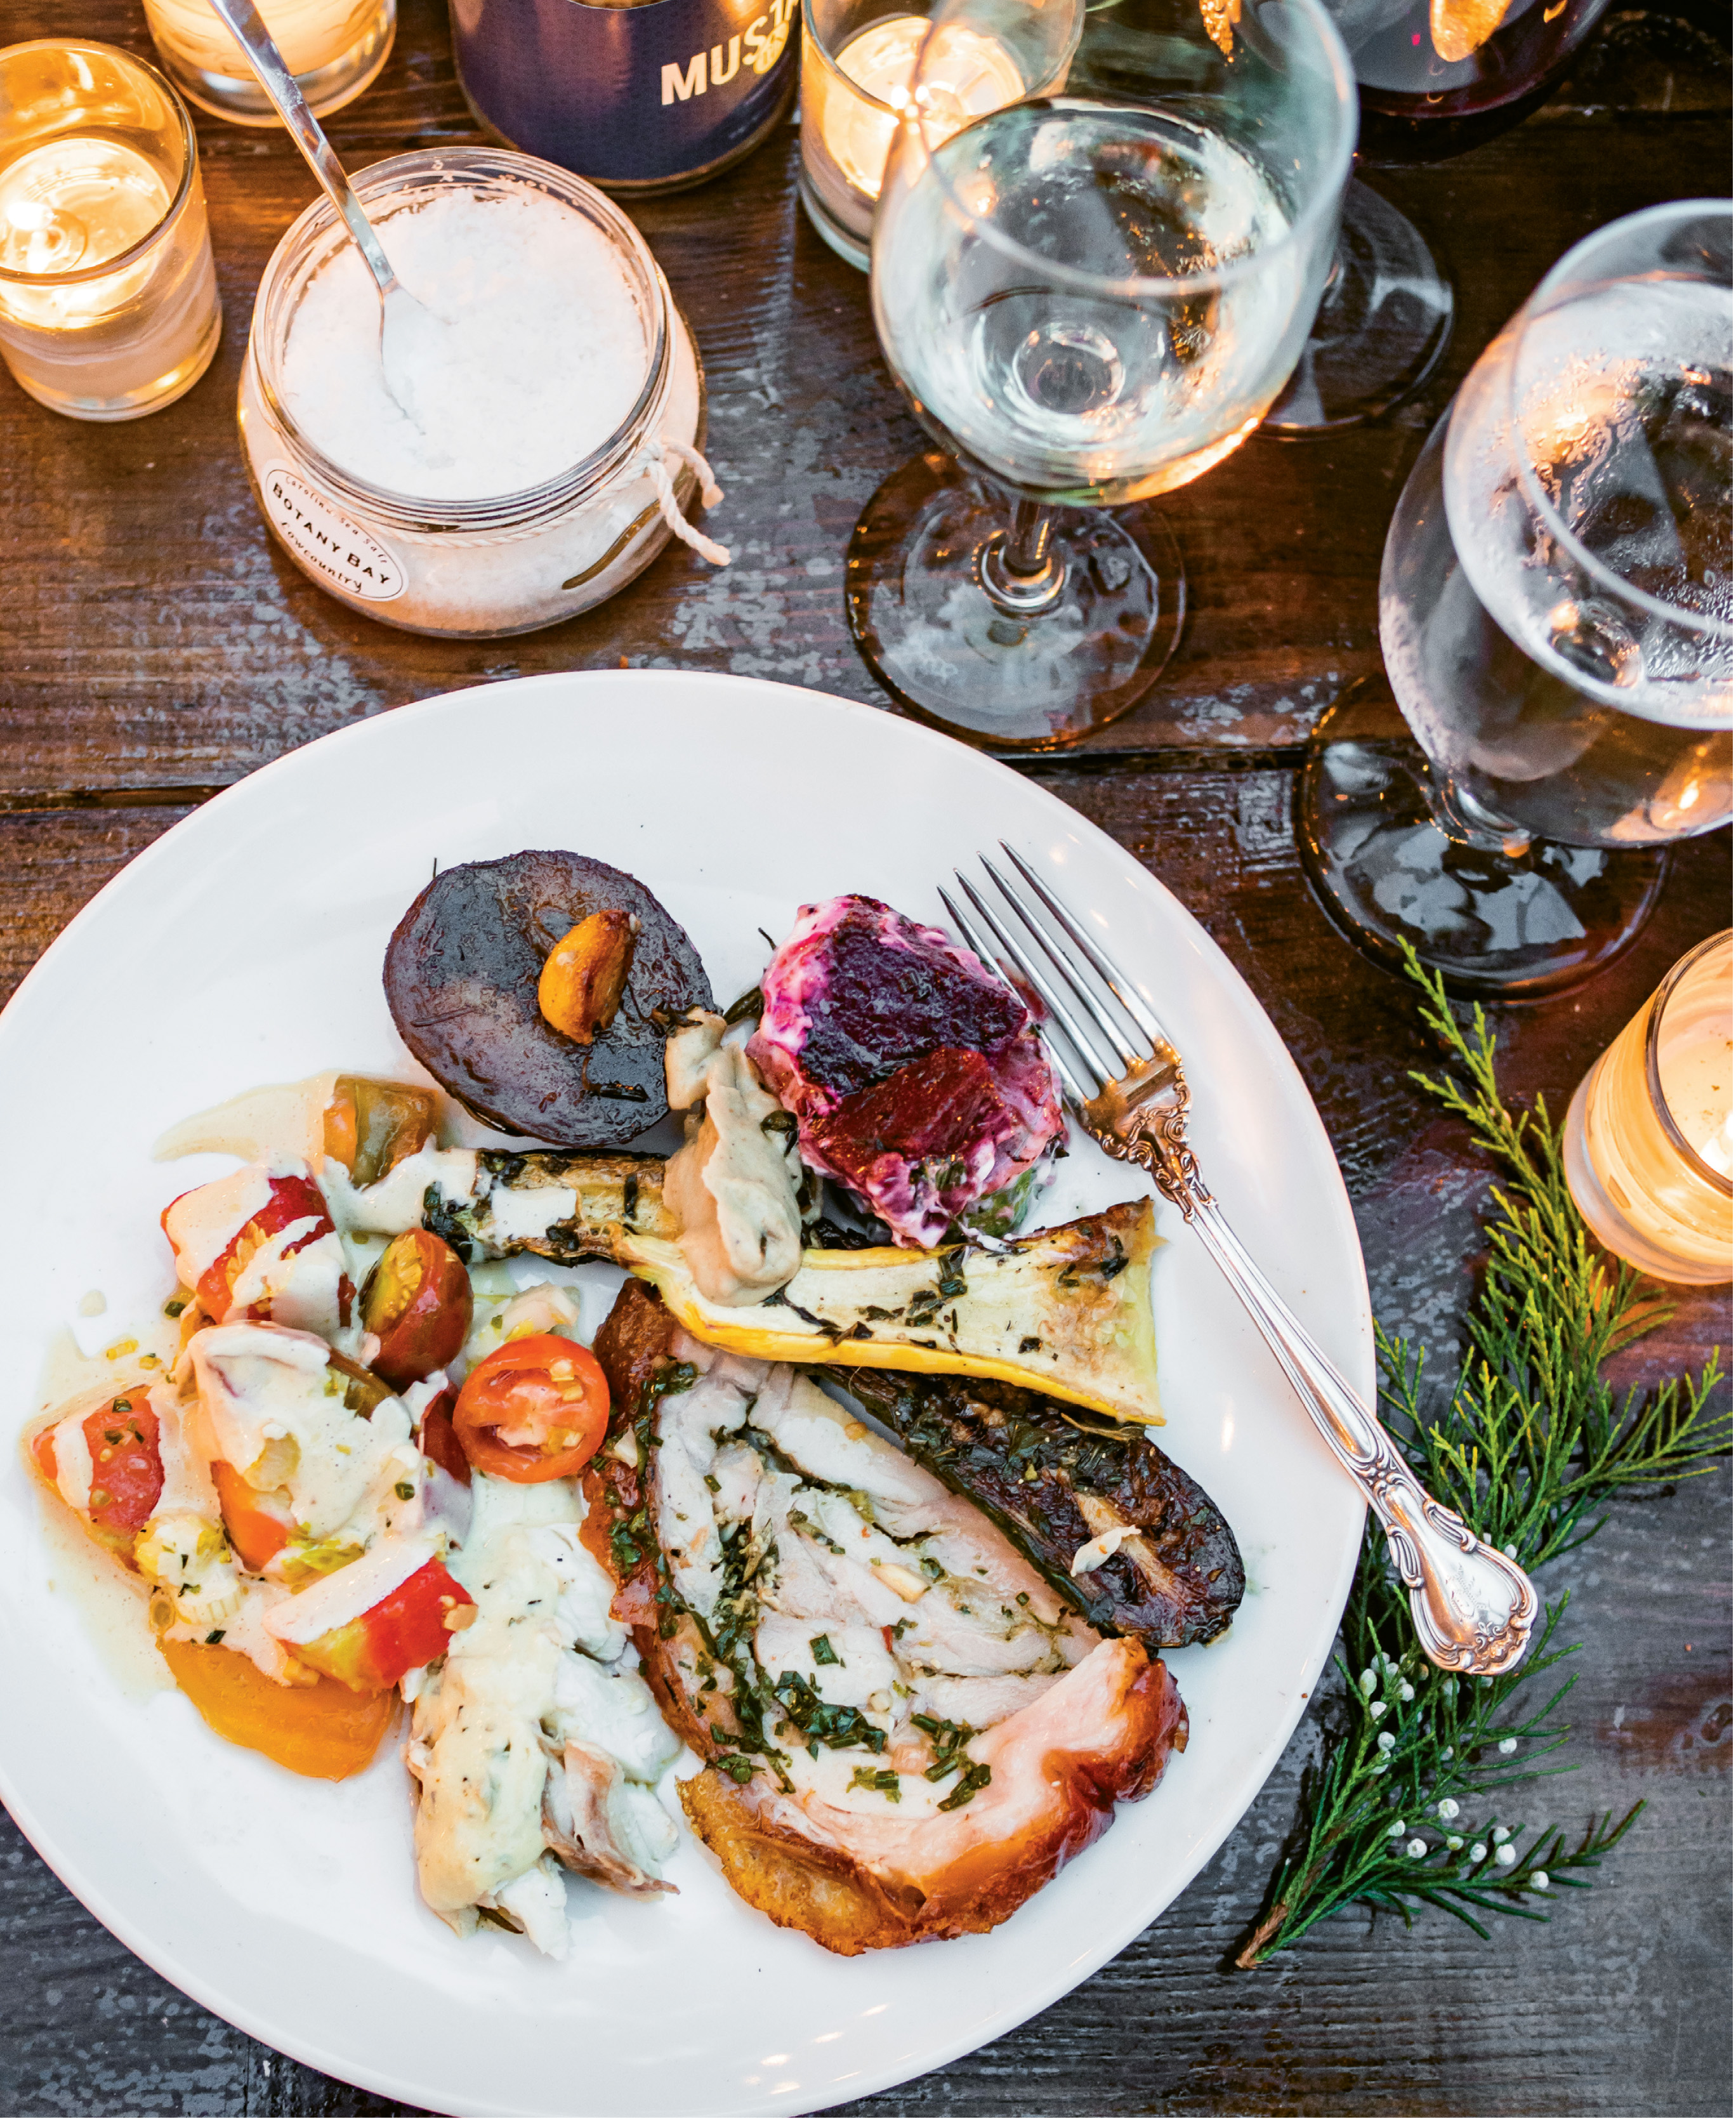 A plateful of fire-roasted delights, including porchetta, snapper, and veggies, is complemented by a cool heirloom  tomato salad.